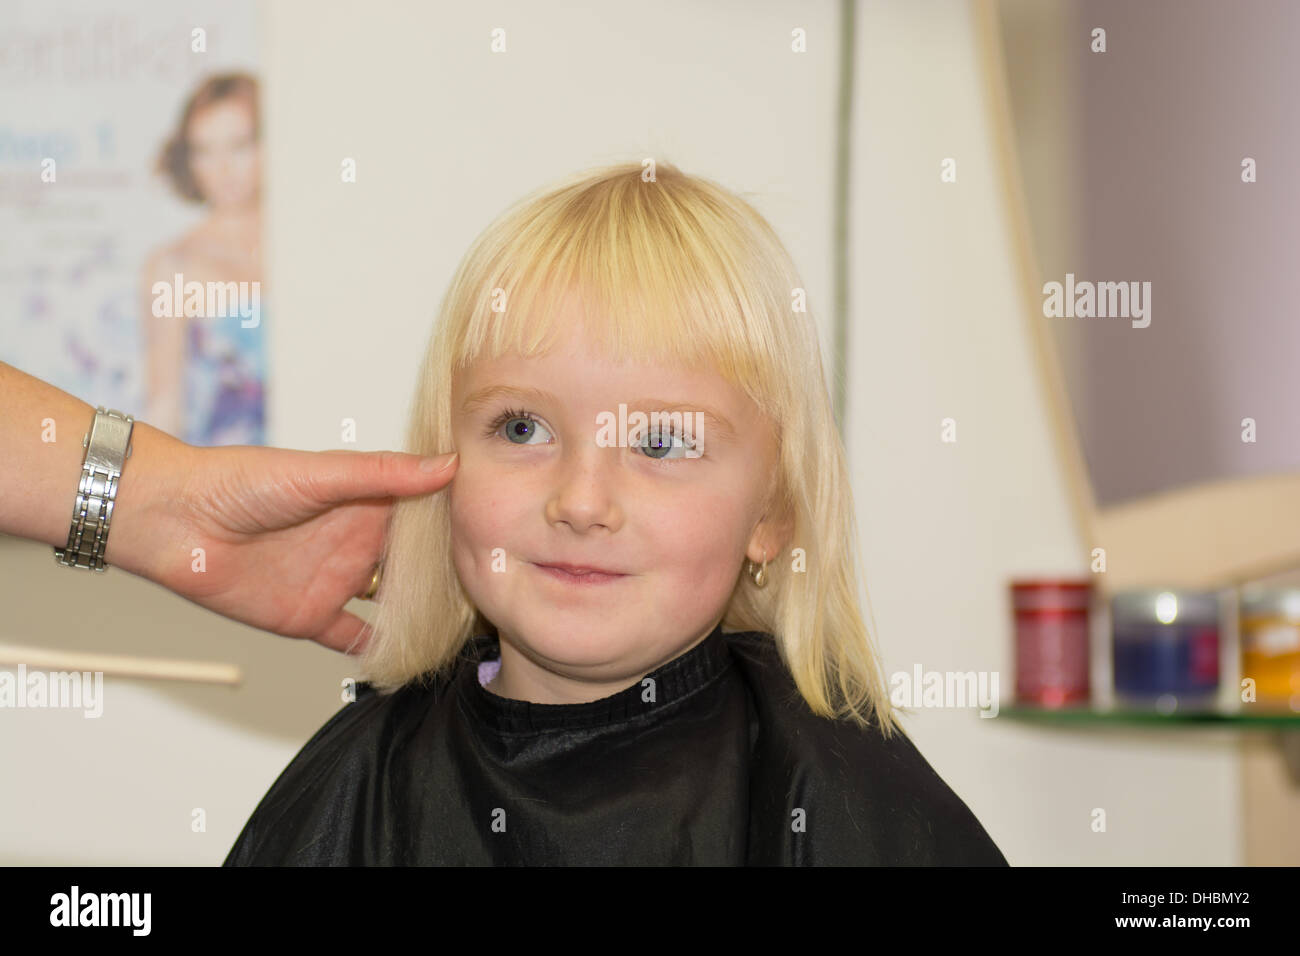 hair care - little girl at a hairdressing salon - Stock Image